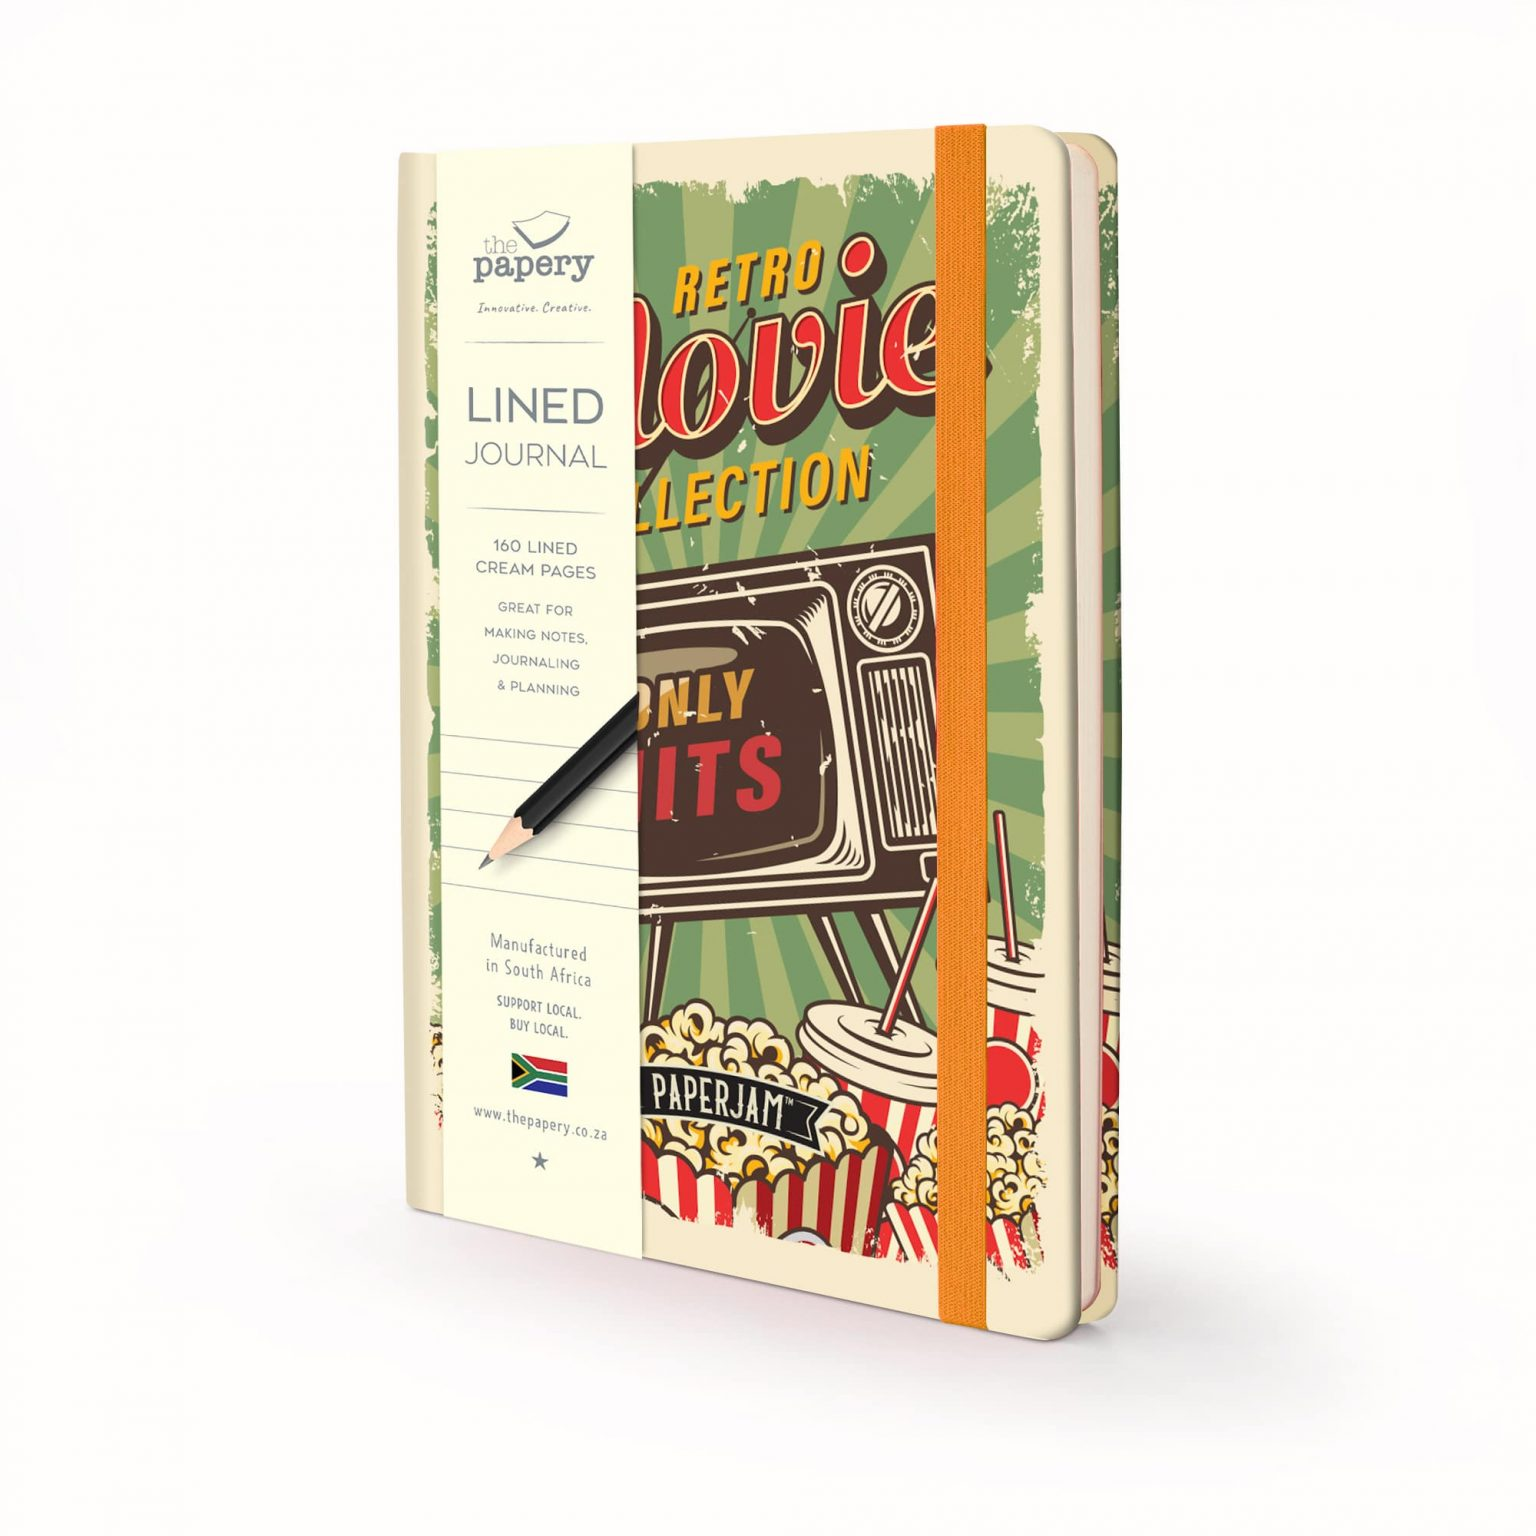 Image shows a Designer Retro - Popcorn Journal